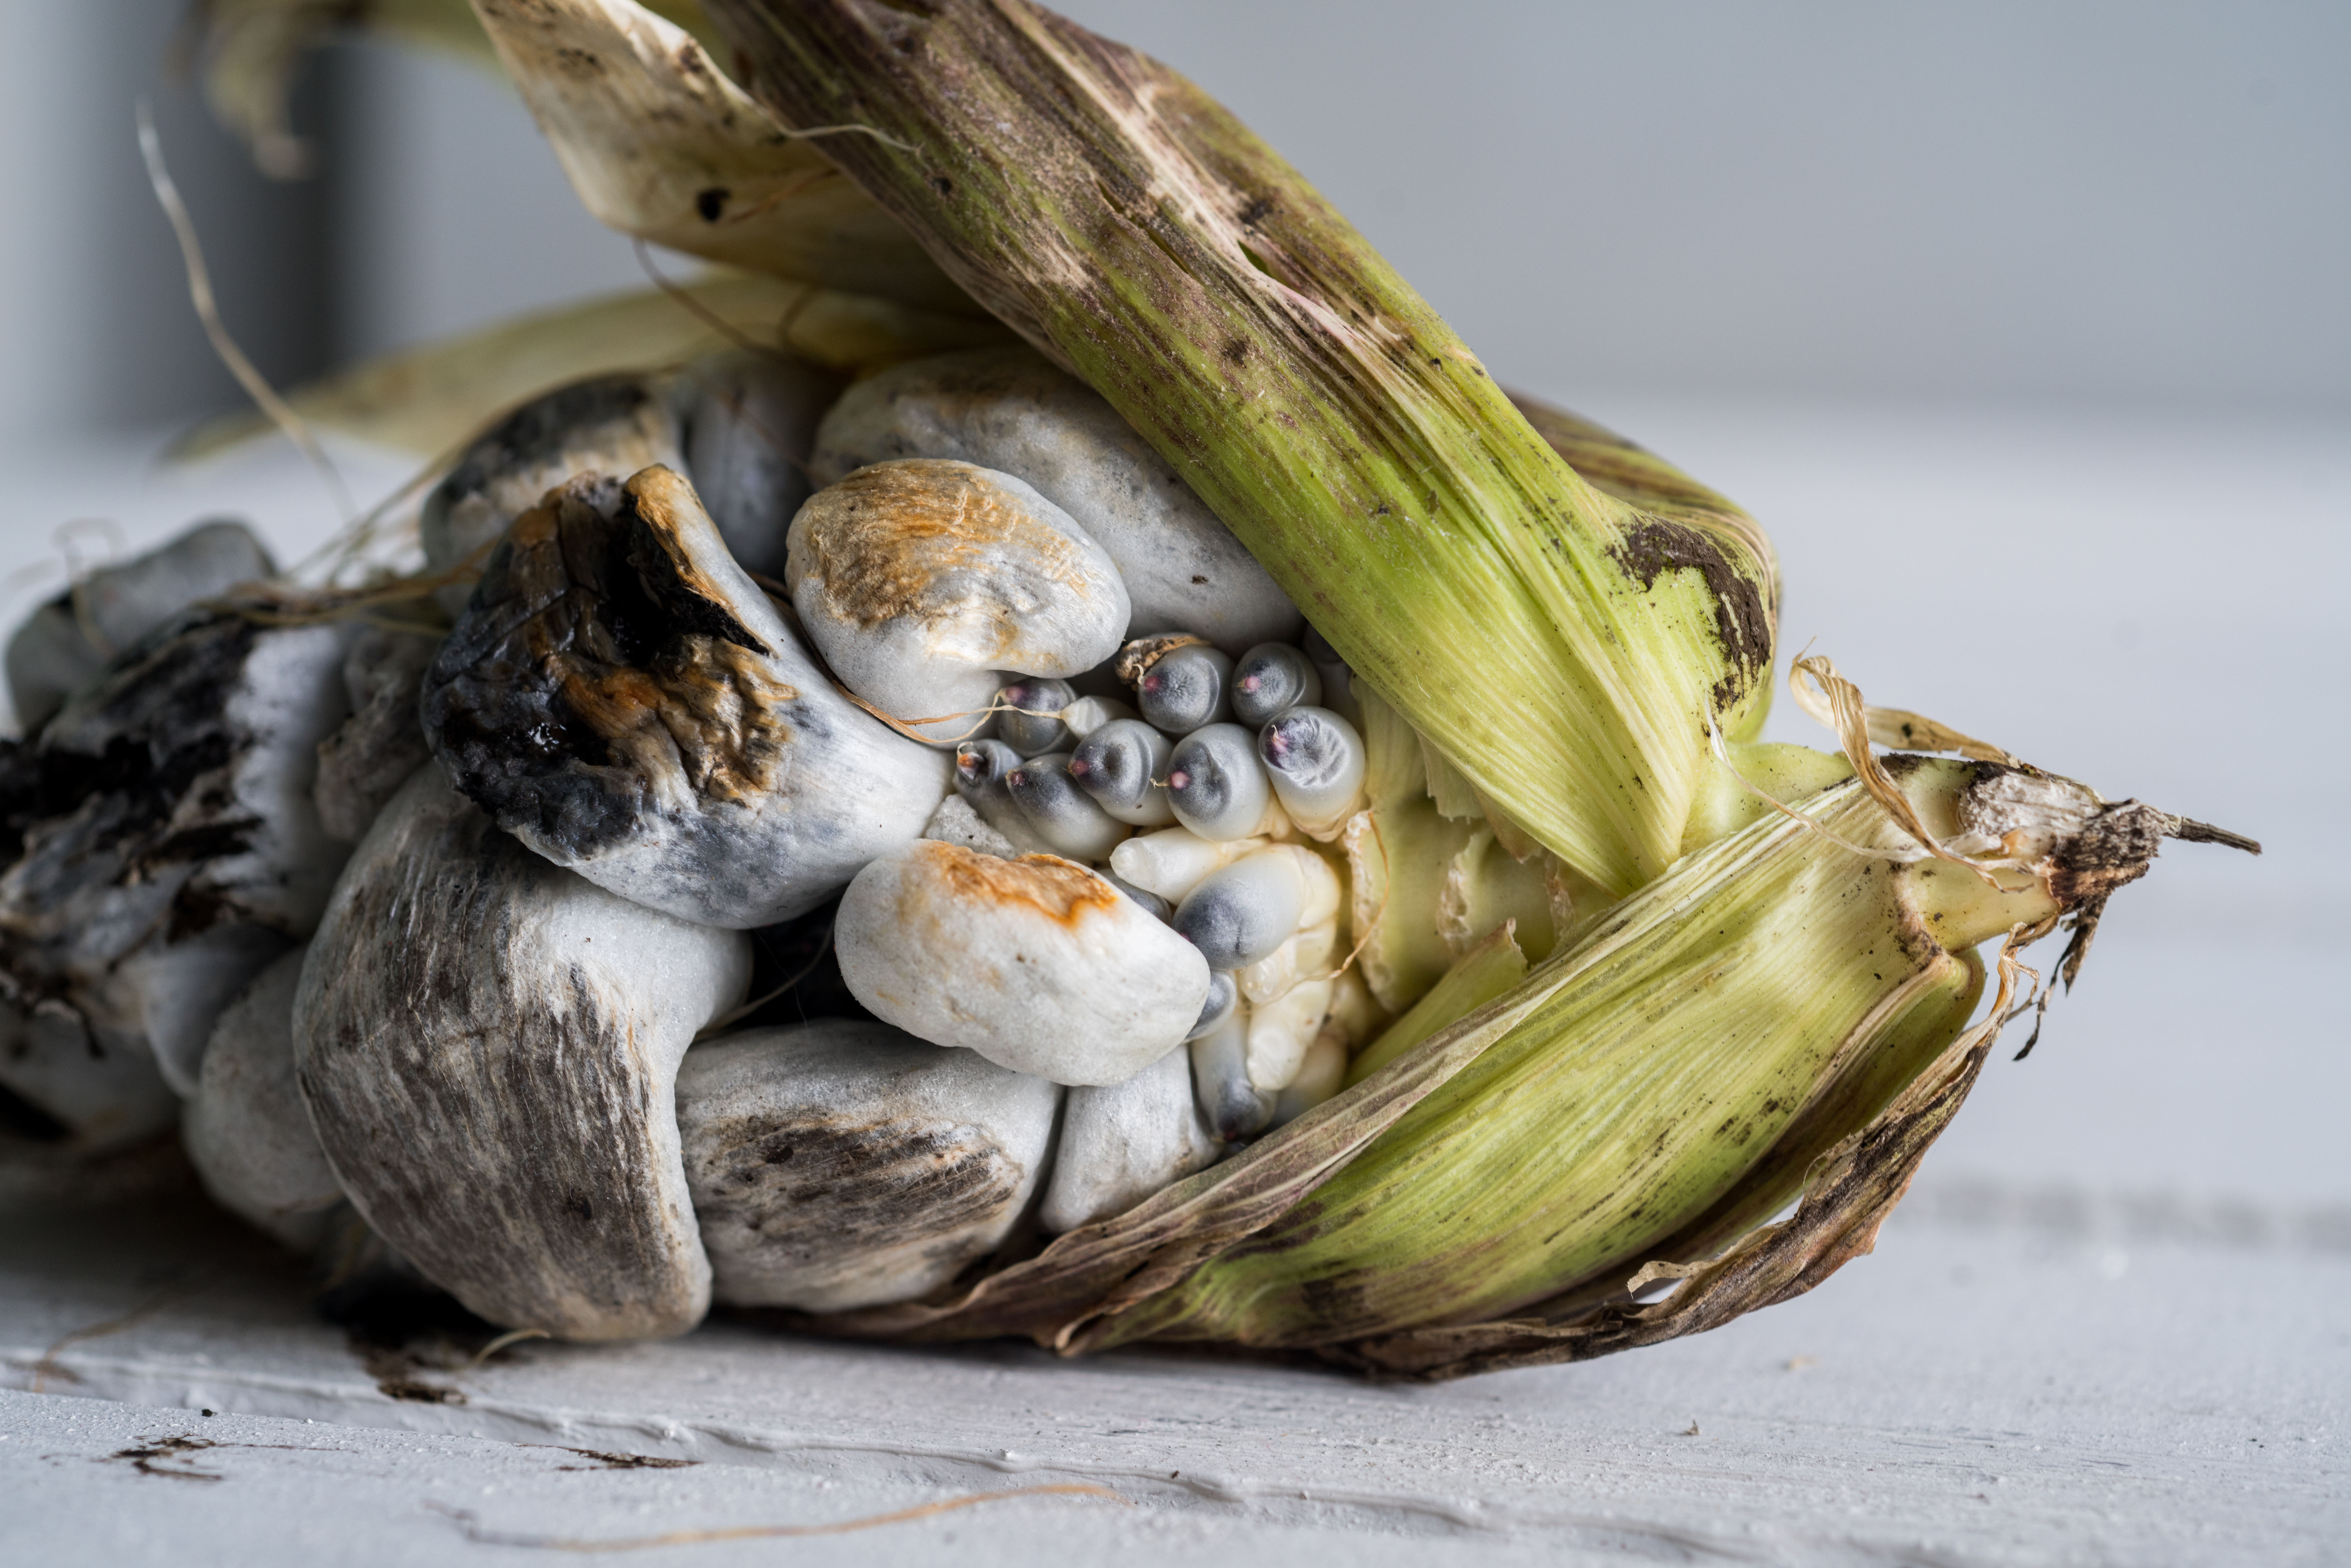 An ear of corn lays on its side, the husks almost entirely removed to reveal the  blue-grey kernels that typify huitlacoche.